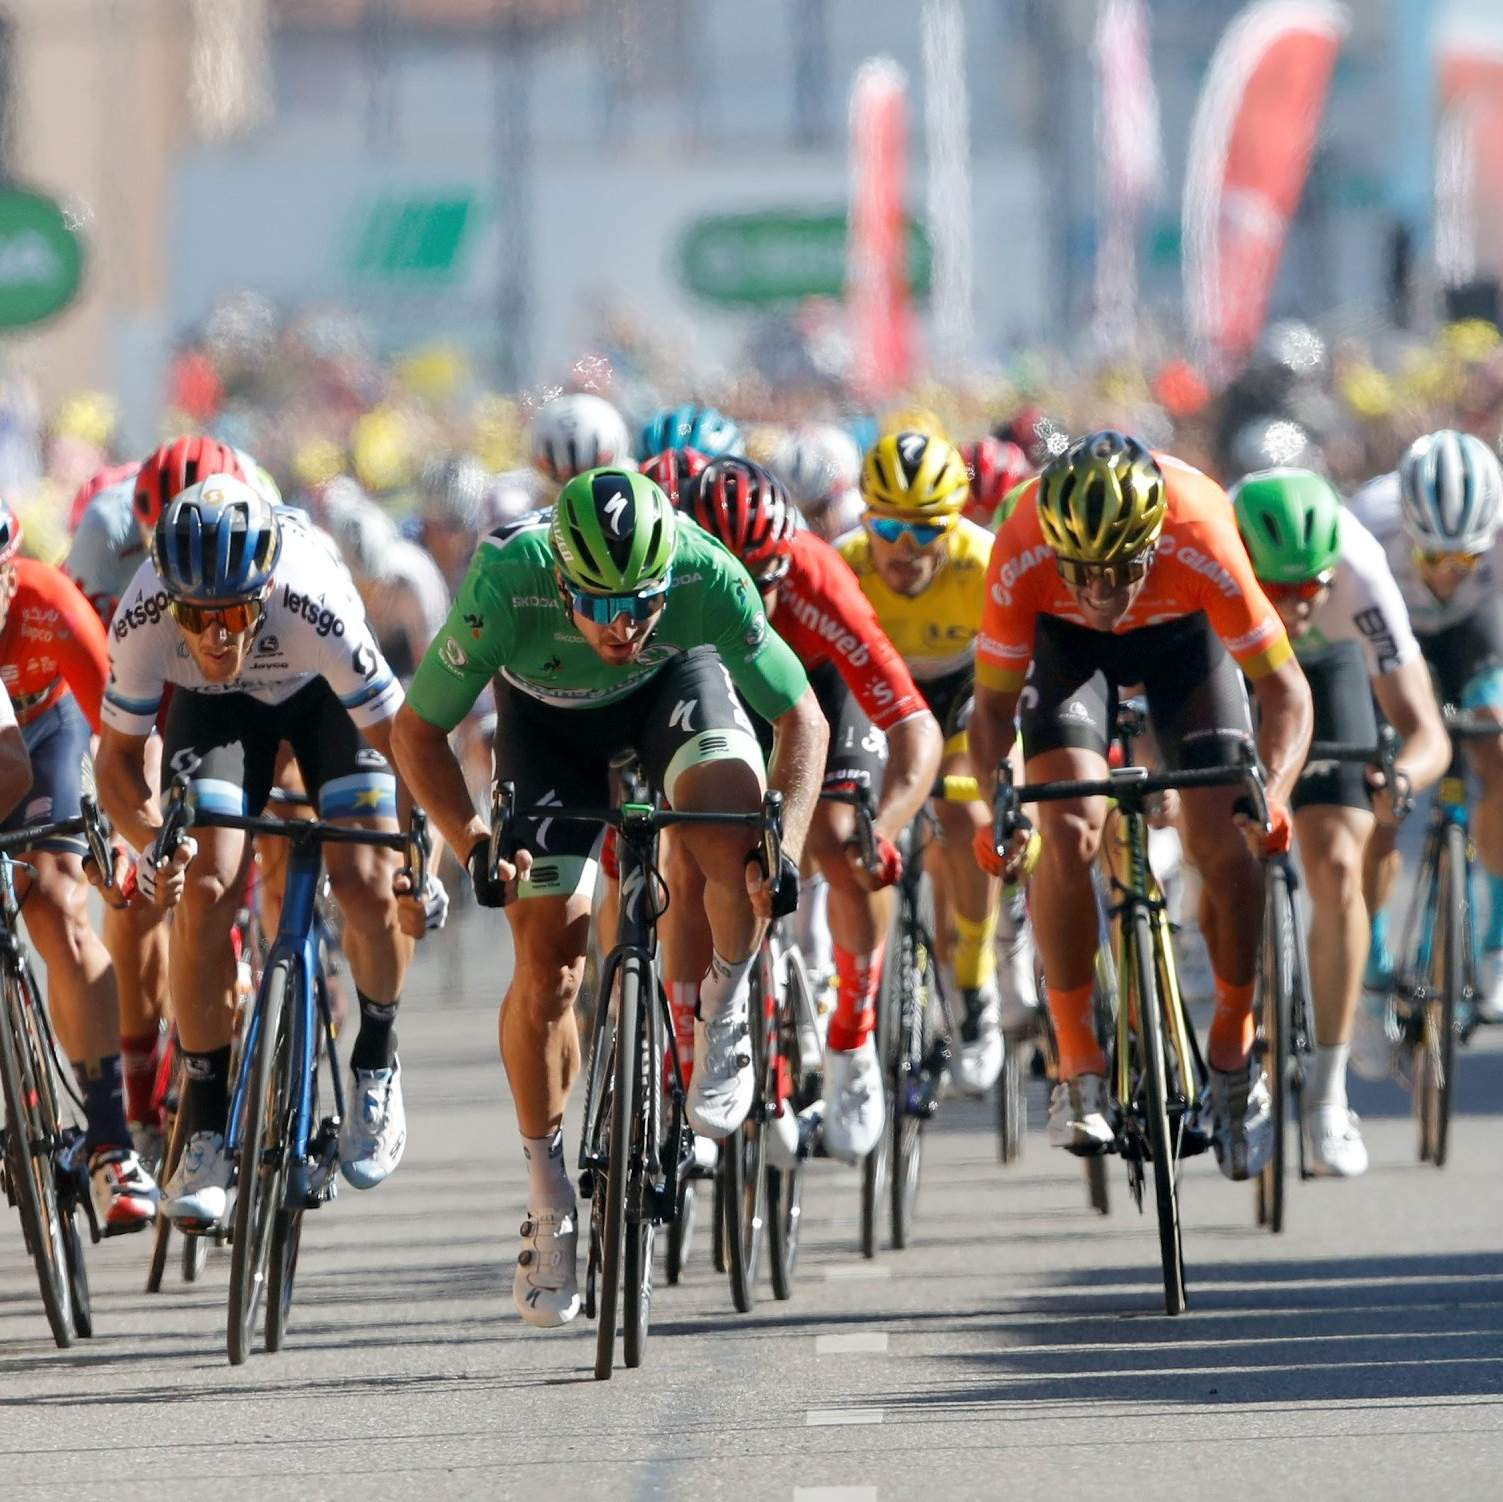 Peter Sagan sprints to victory at Stage 5 of Tour de France